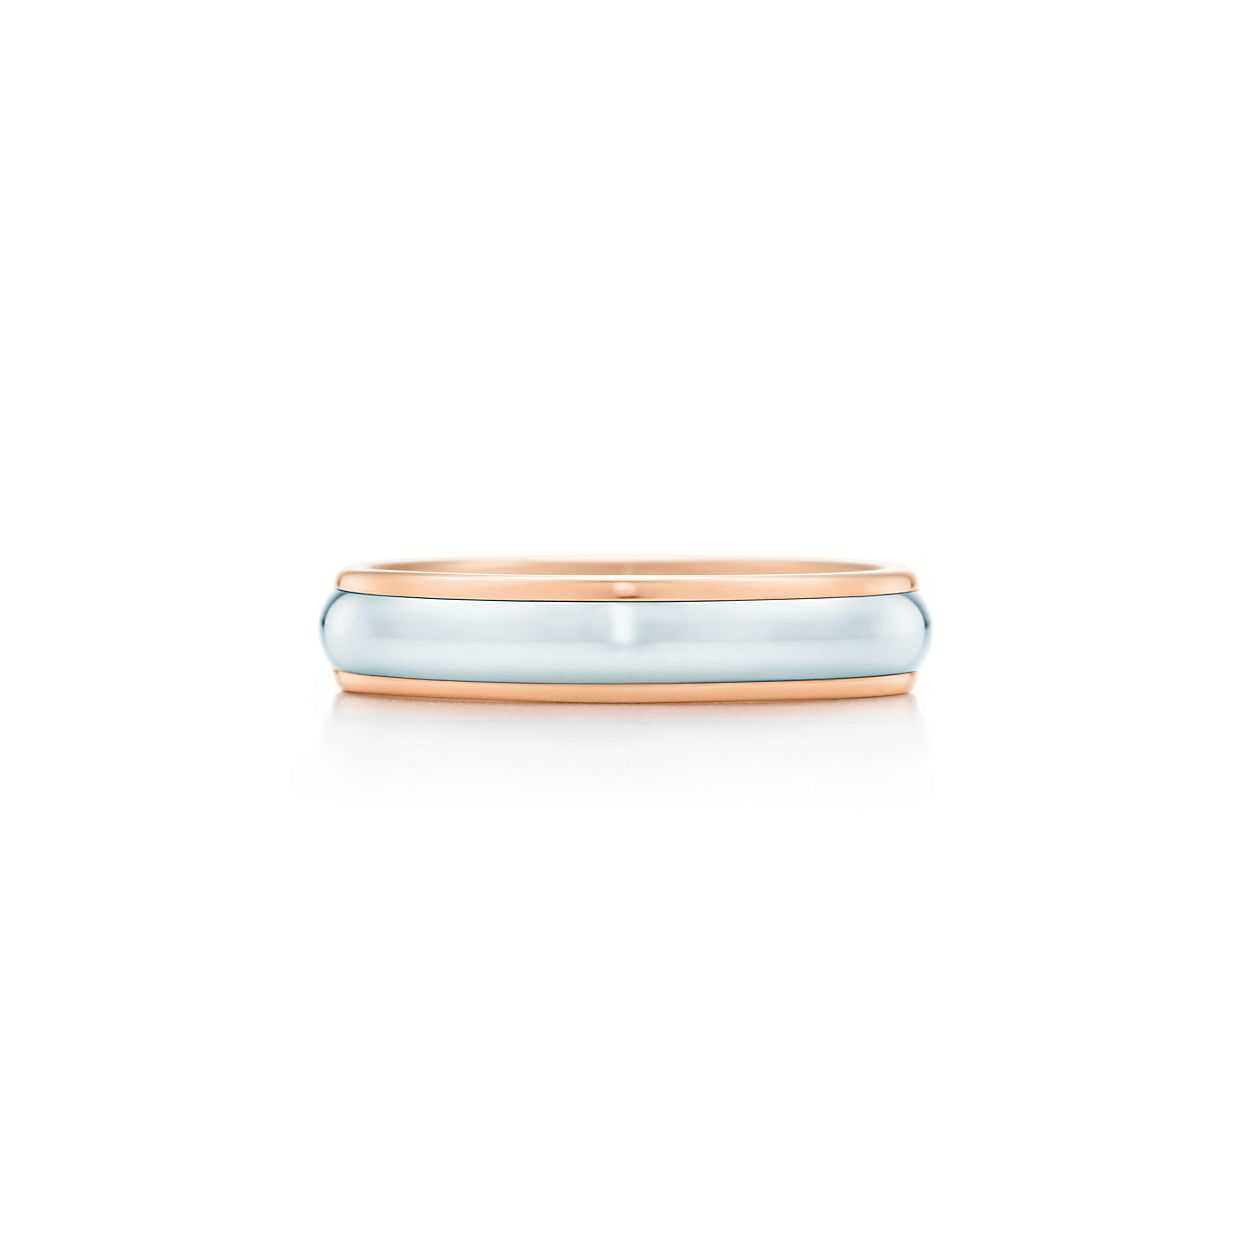 Tiffany Classic wedding band ring in platinum, 3 mm wide - Size 11 1/2 Tiffany & Co.